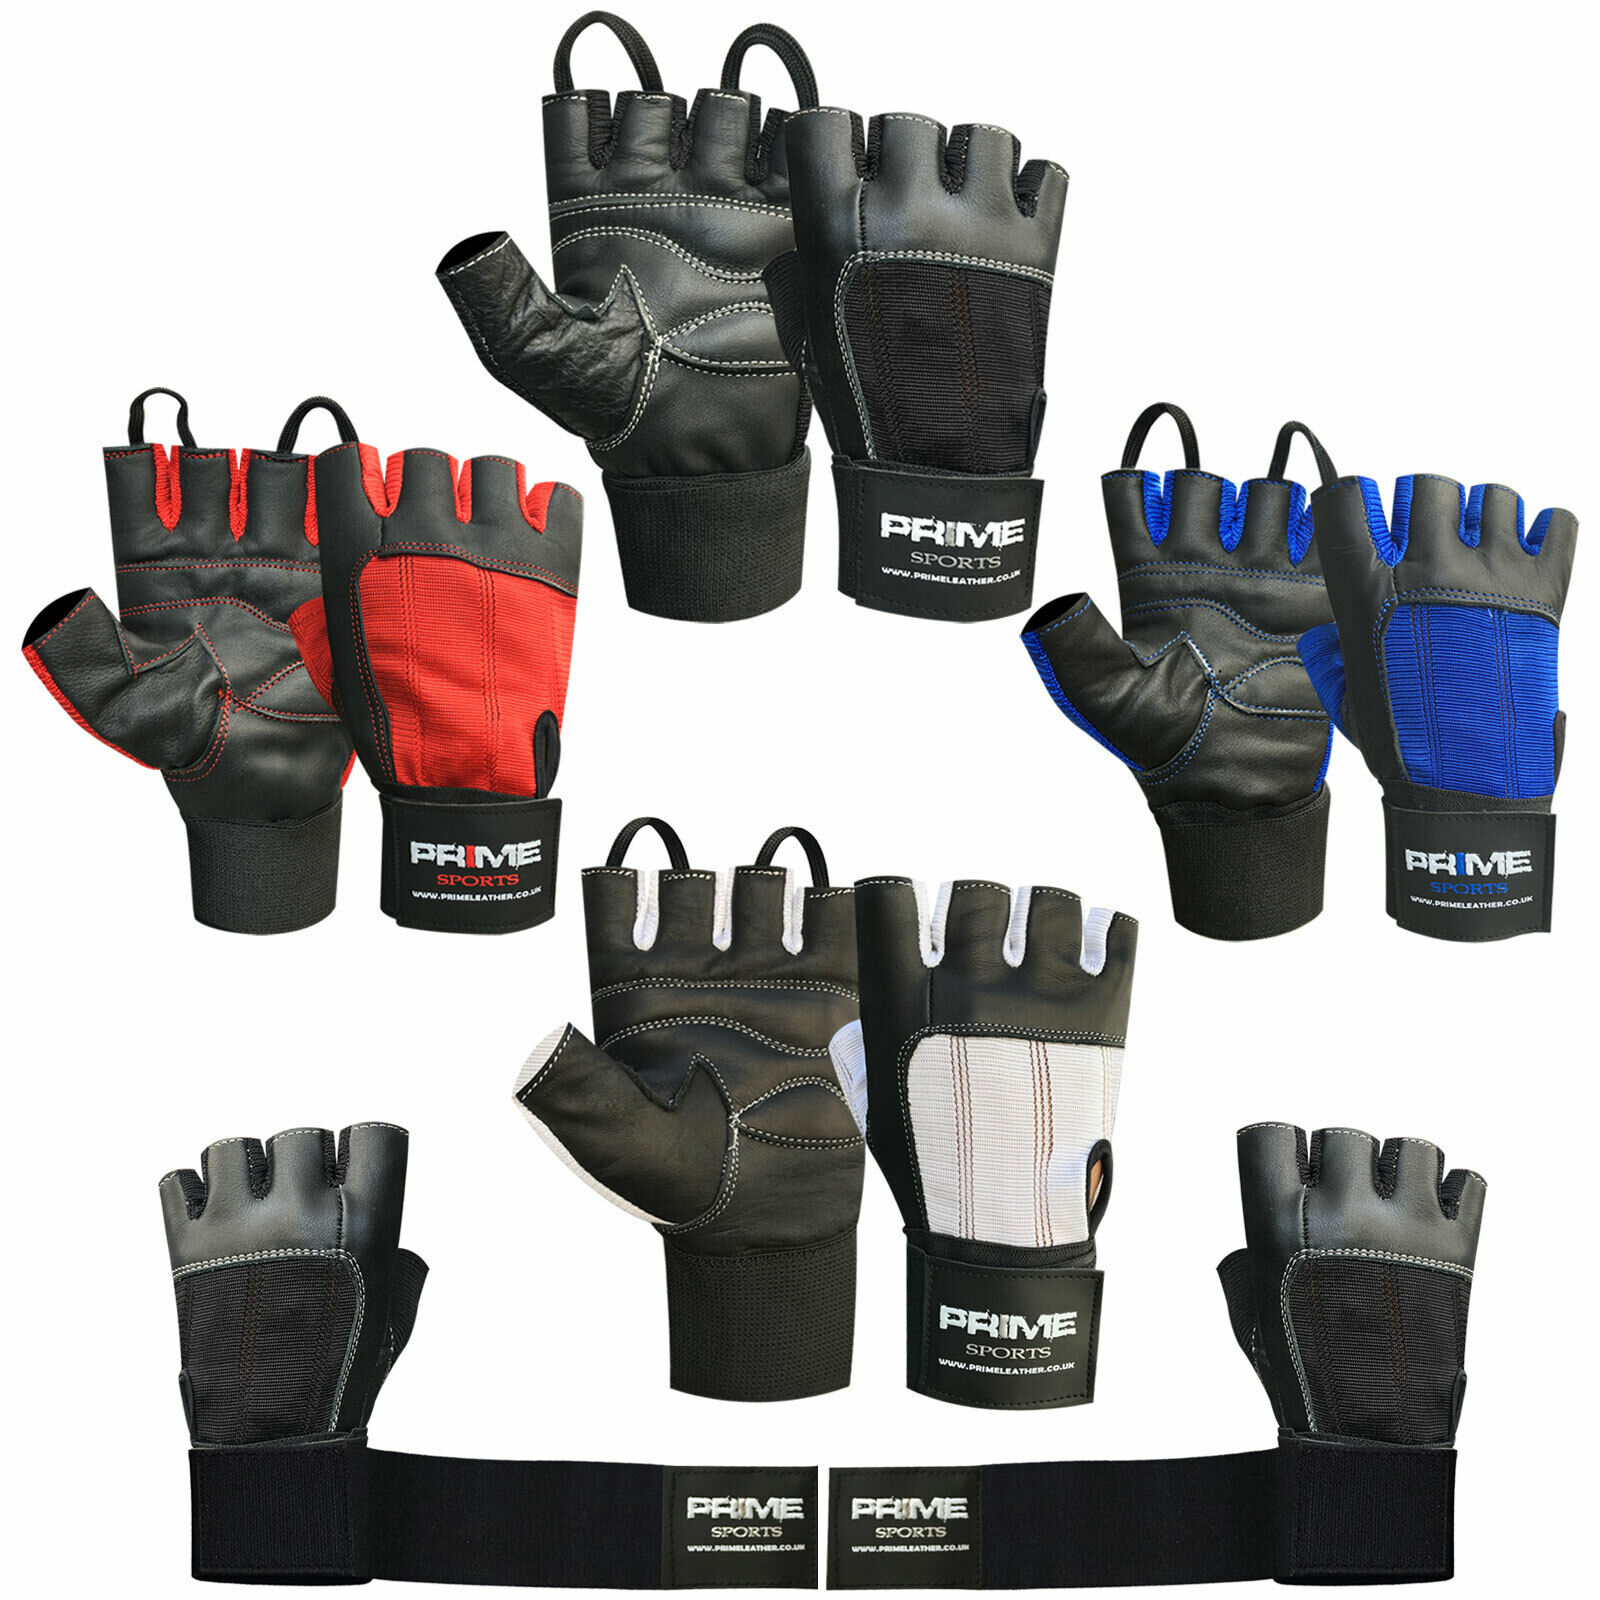 Half Finger Weight Lifting GYM Fitness Workout Training Real Leather Gloves 115